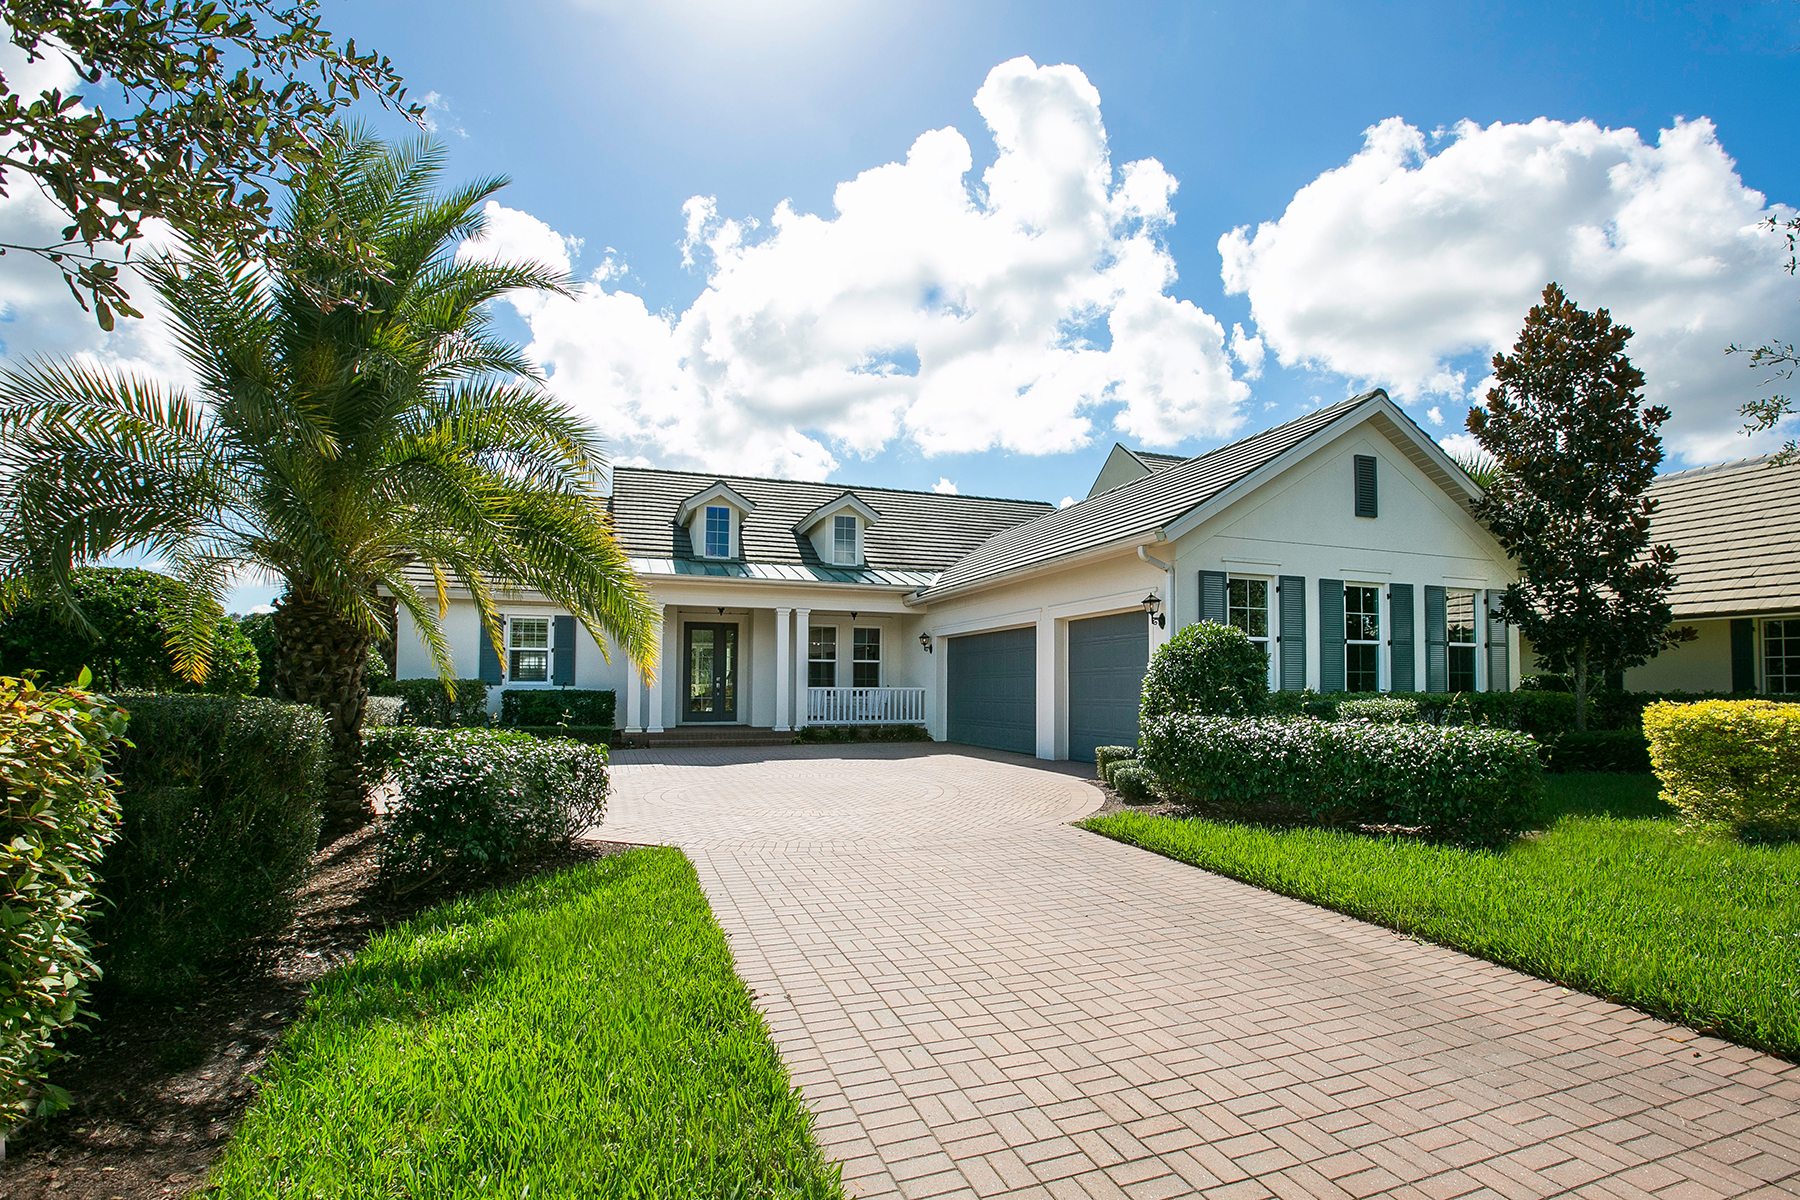 Single Family Home for Sale at THE FOUNDERS CLUB 8817 Colonels Ct Sarasota, Florida, 34240 United States